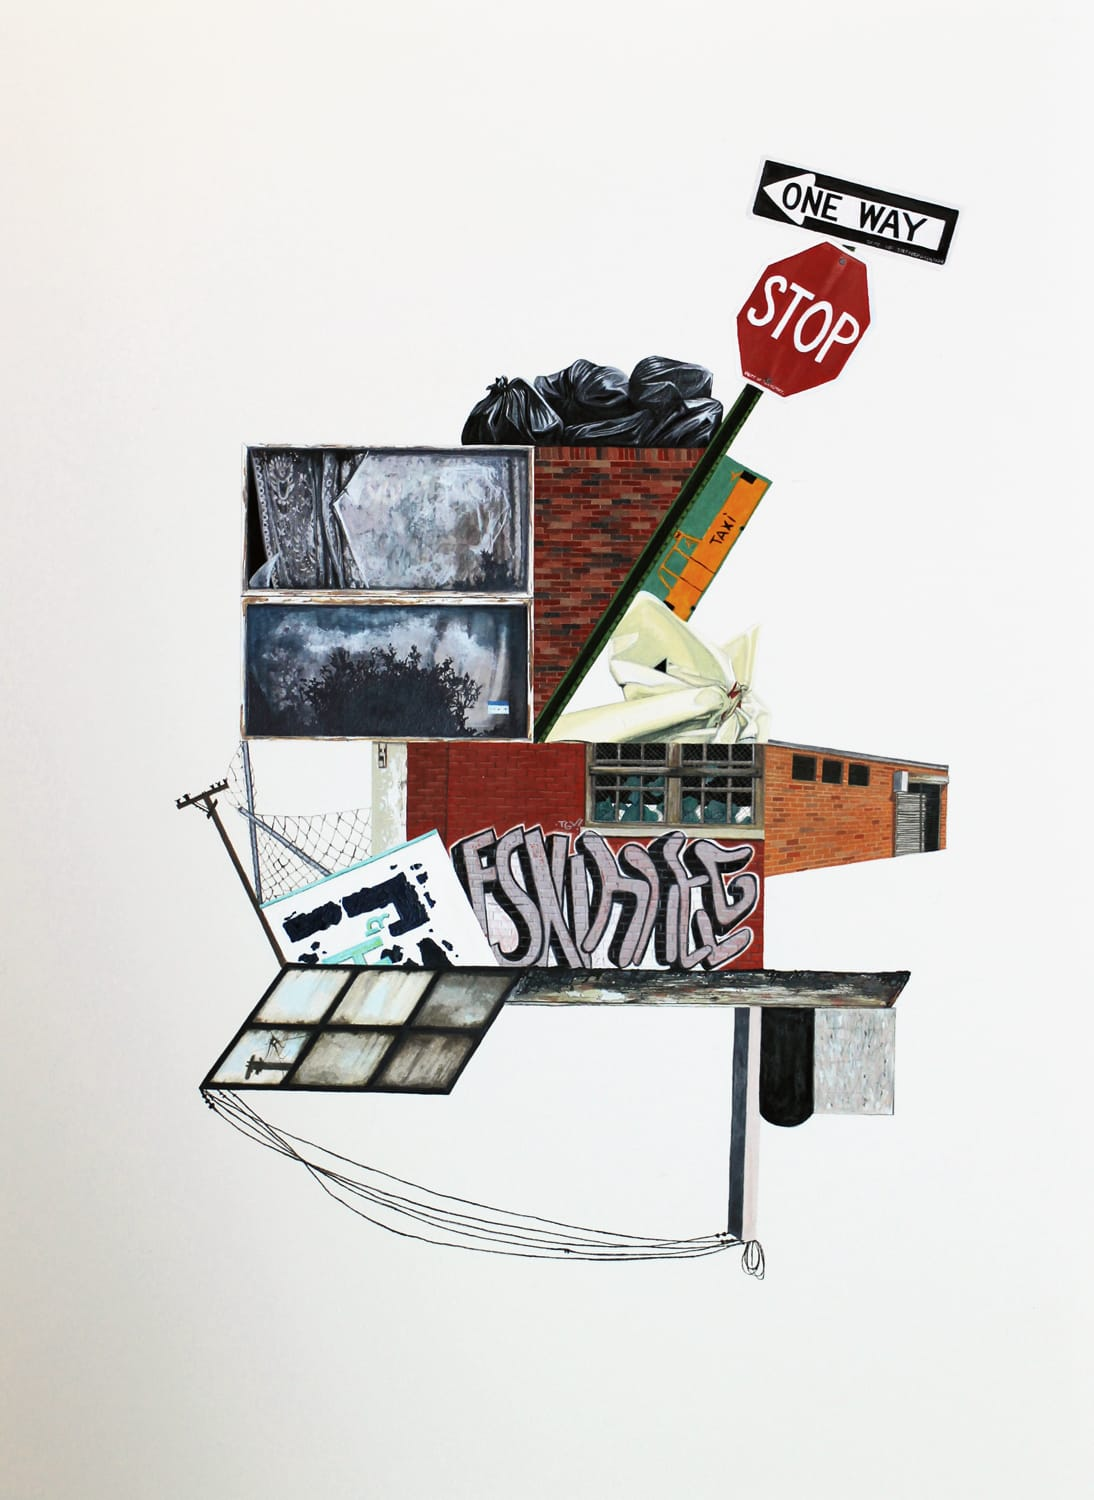 Marita Hewitt  Collected Narratives (Stop), 2013  Watercolour on paper  22.4 x 29.9 in 57 x 76 cm